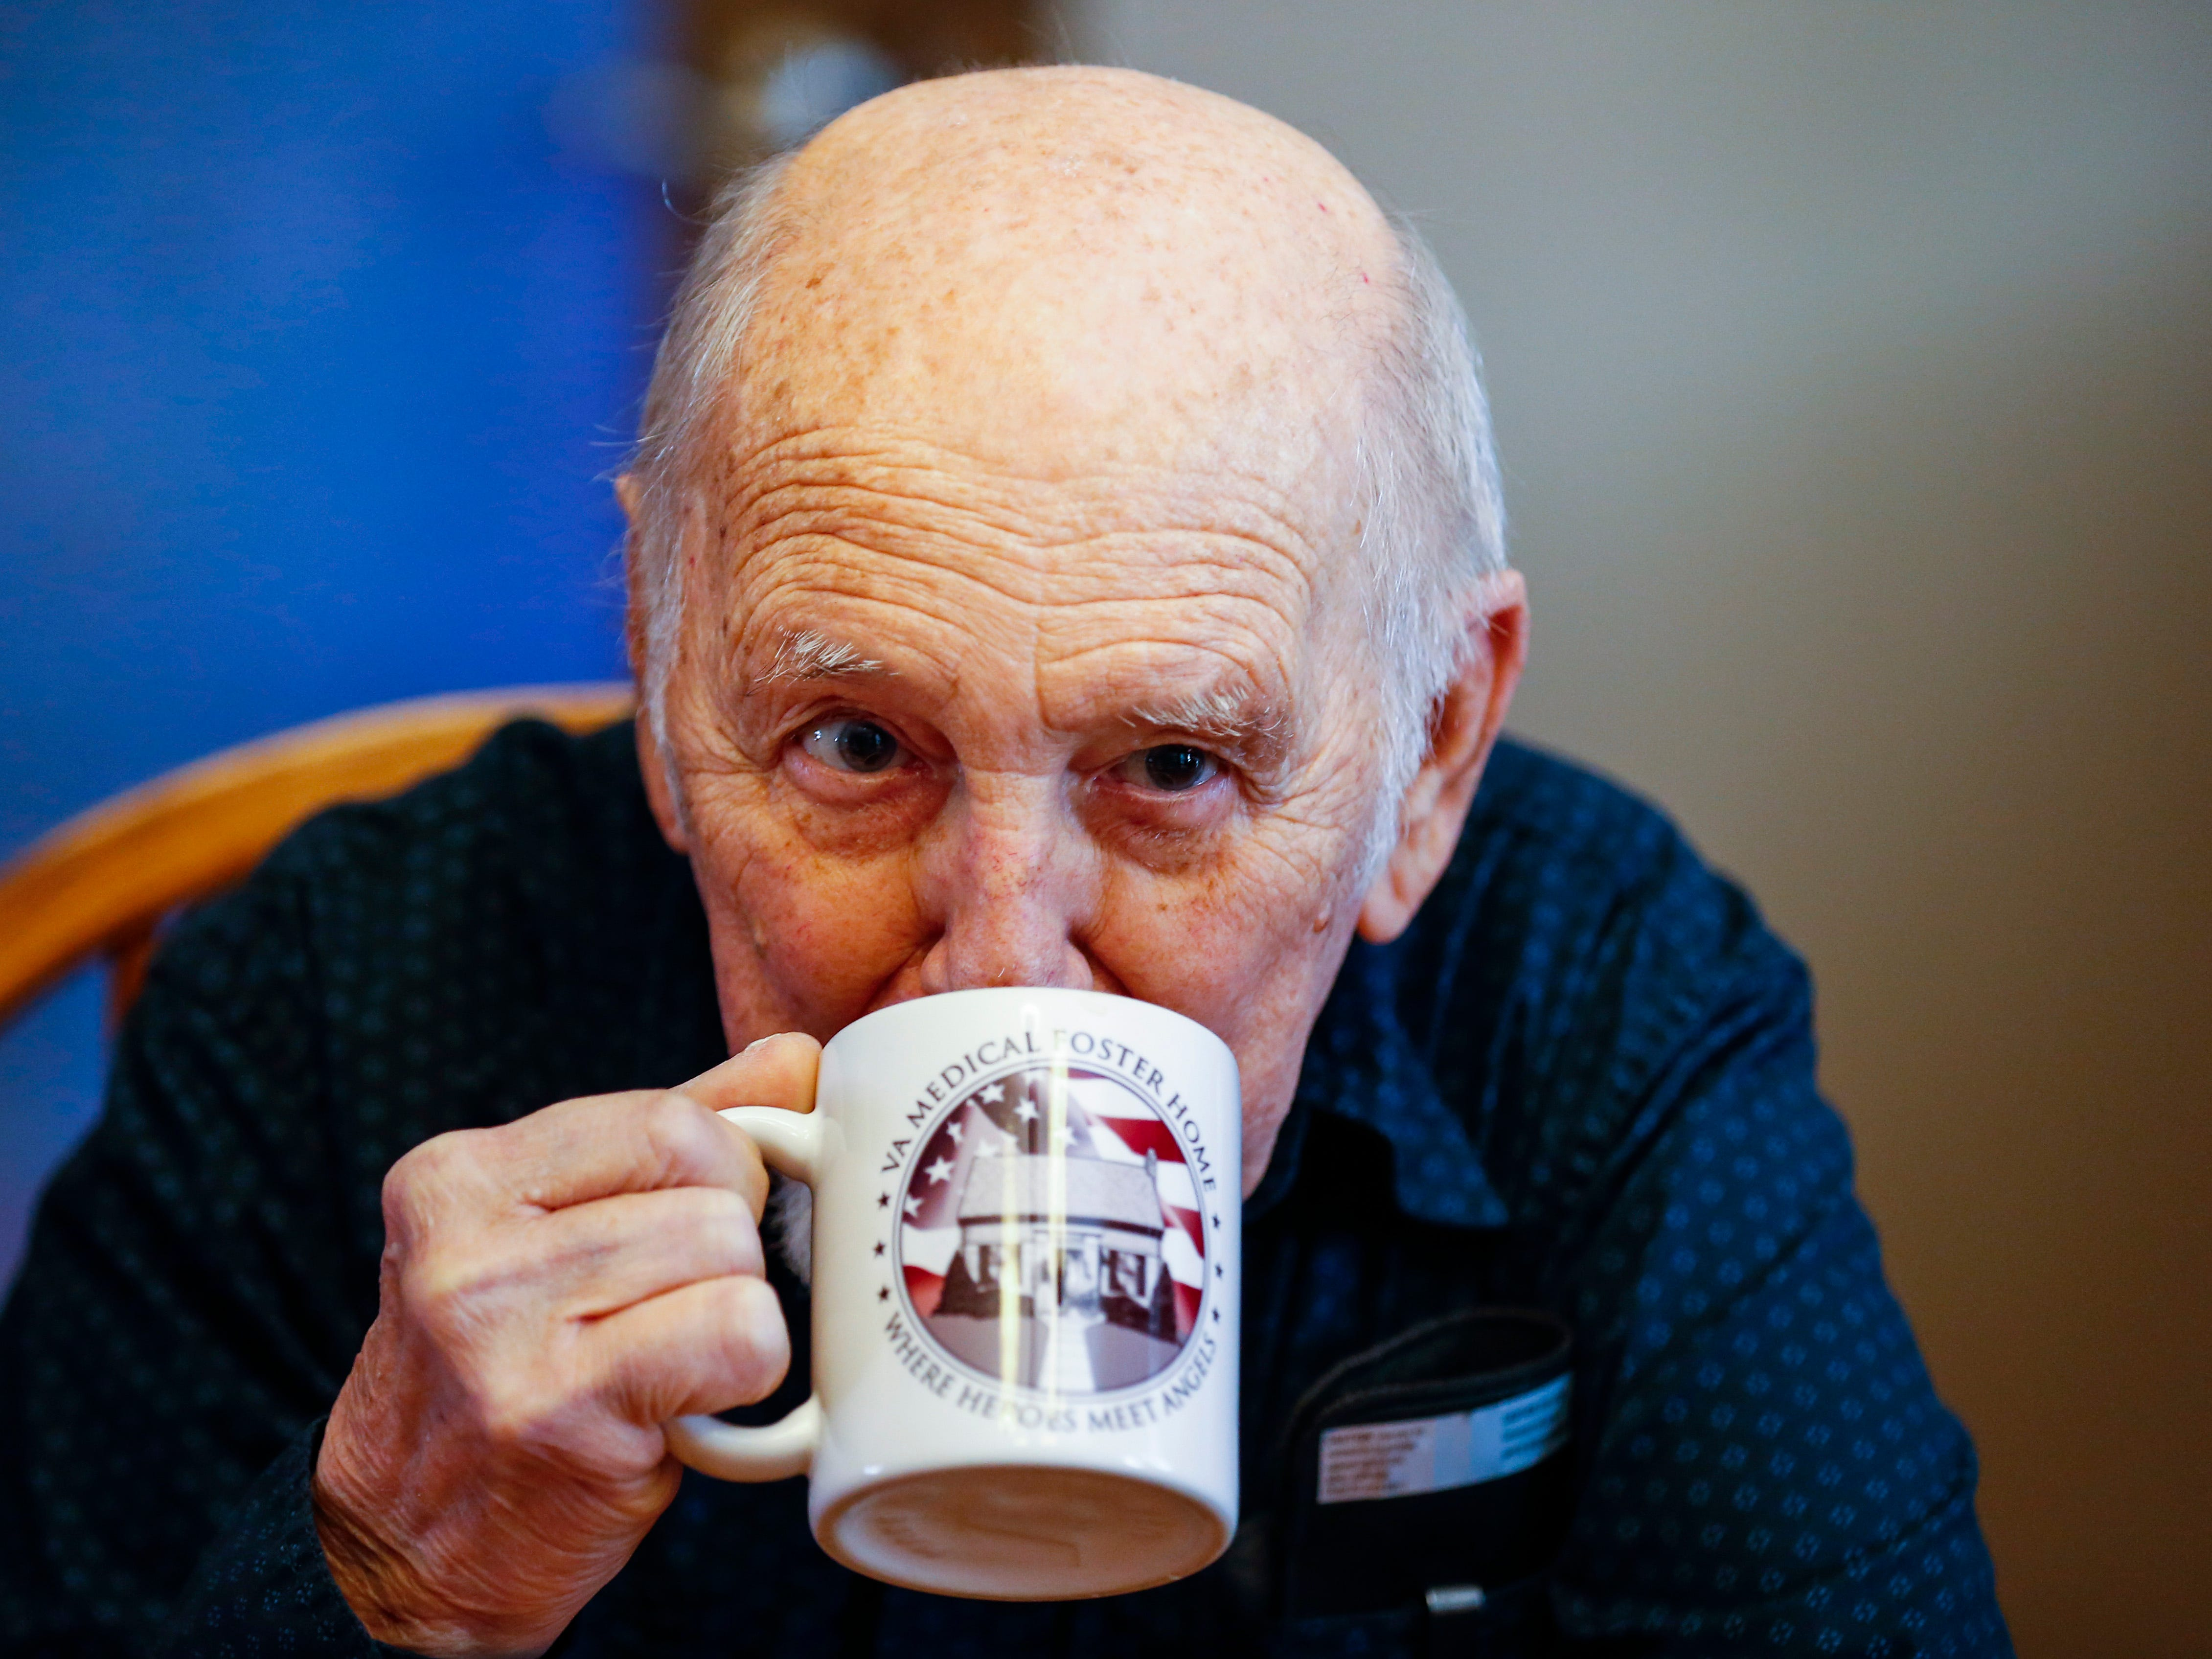 Vietnam veteran Gene Solomon, 77, drink coffee while talking with Joyce and Frank Keim who's home he is staying in as part of the VA's Medical Foster Home Program.